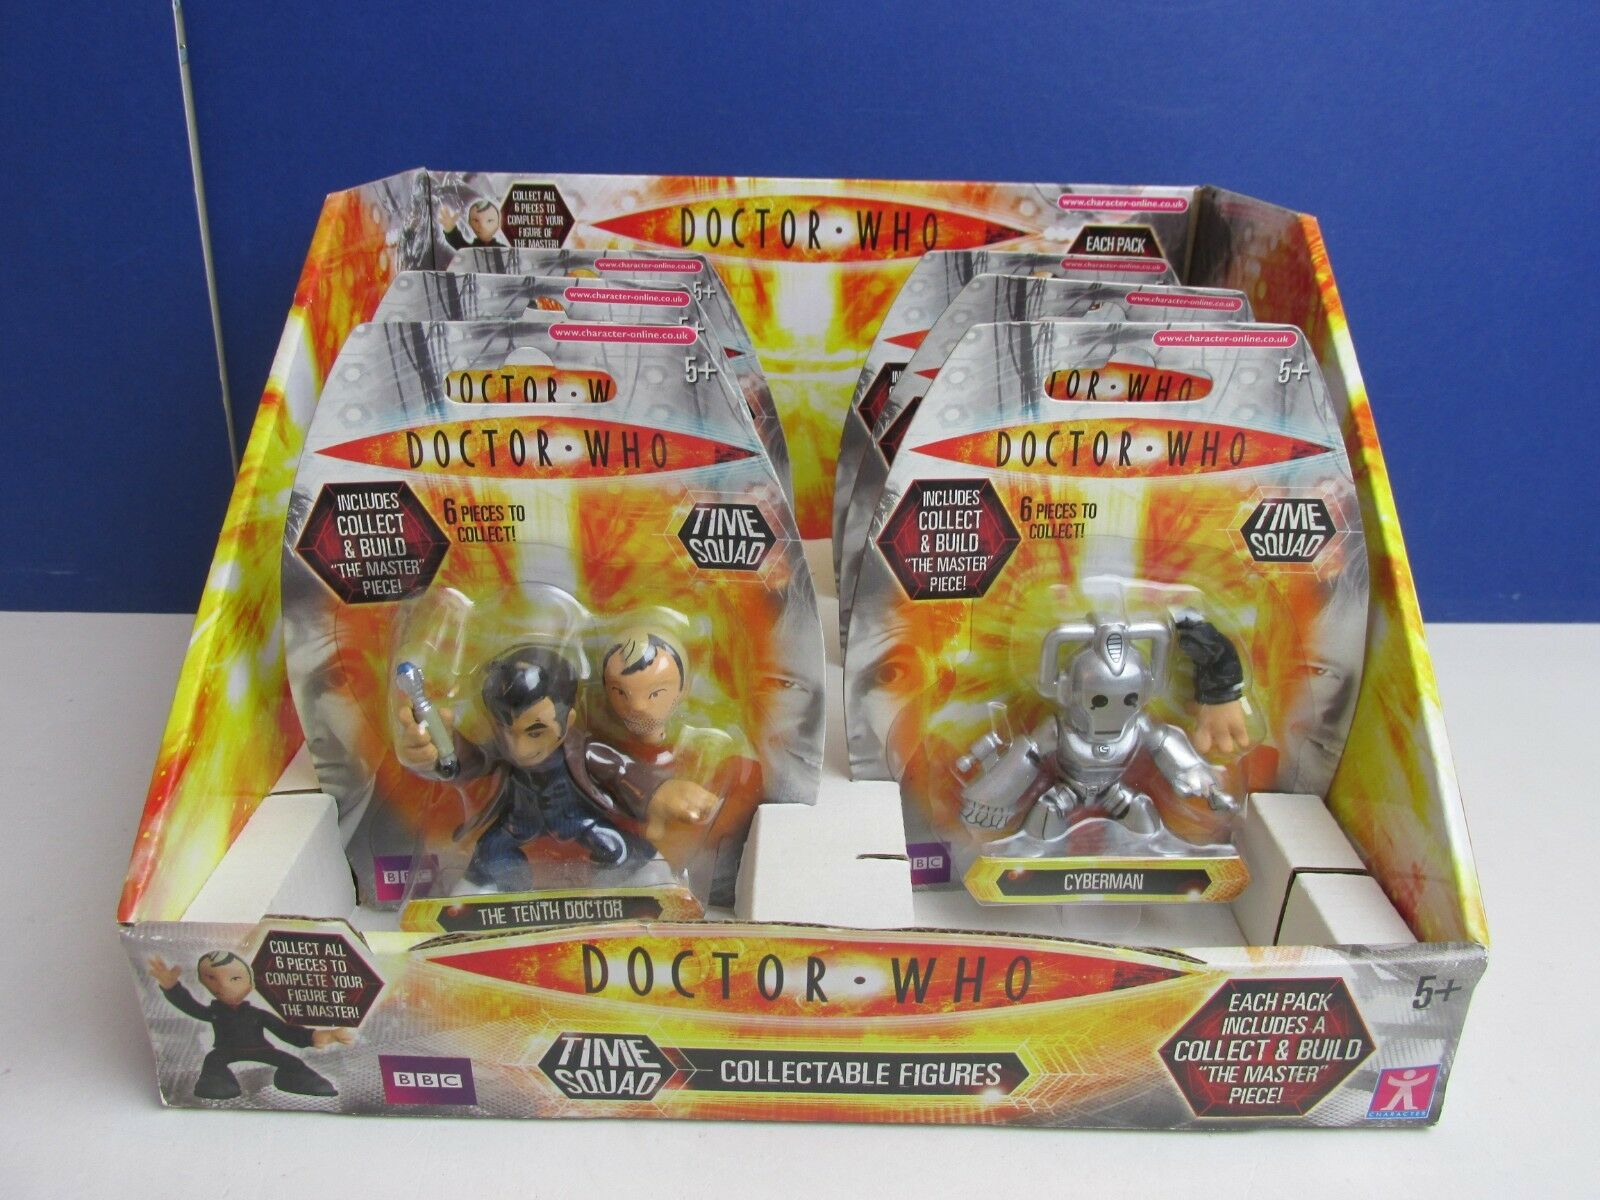 Dr doctor who COLLECT & BUILD master TIME TIME TIME SQUAD FIGURE complete SET SHOP DISPLAY a534d8